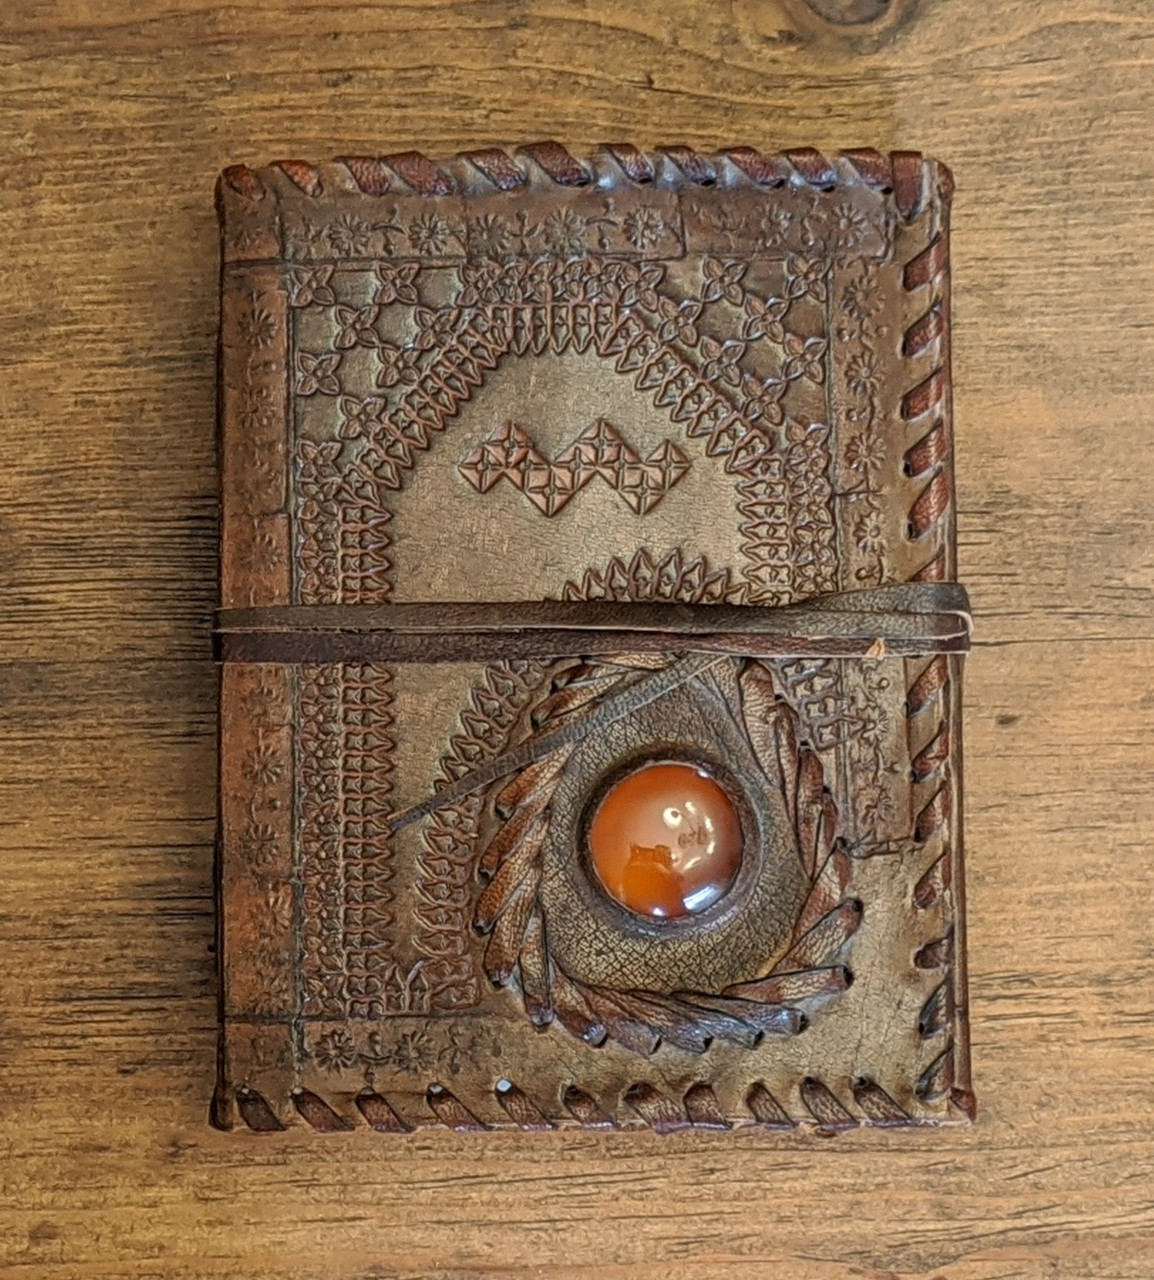 LEATHER JOURNAL - Old World Style with embossing, semi precious stone and stitching